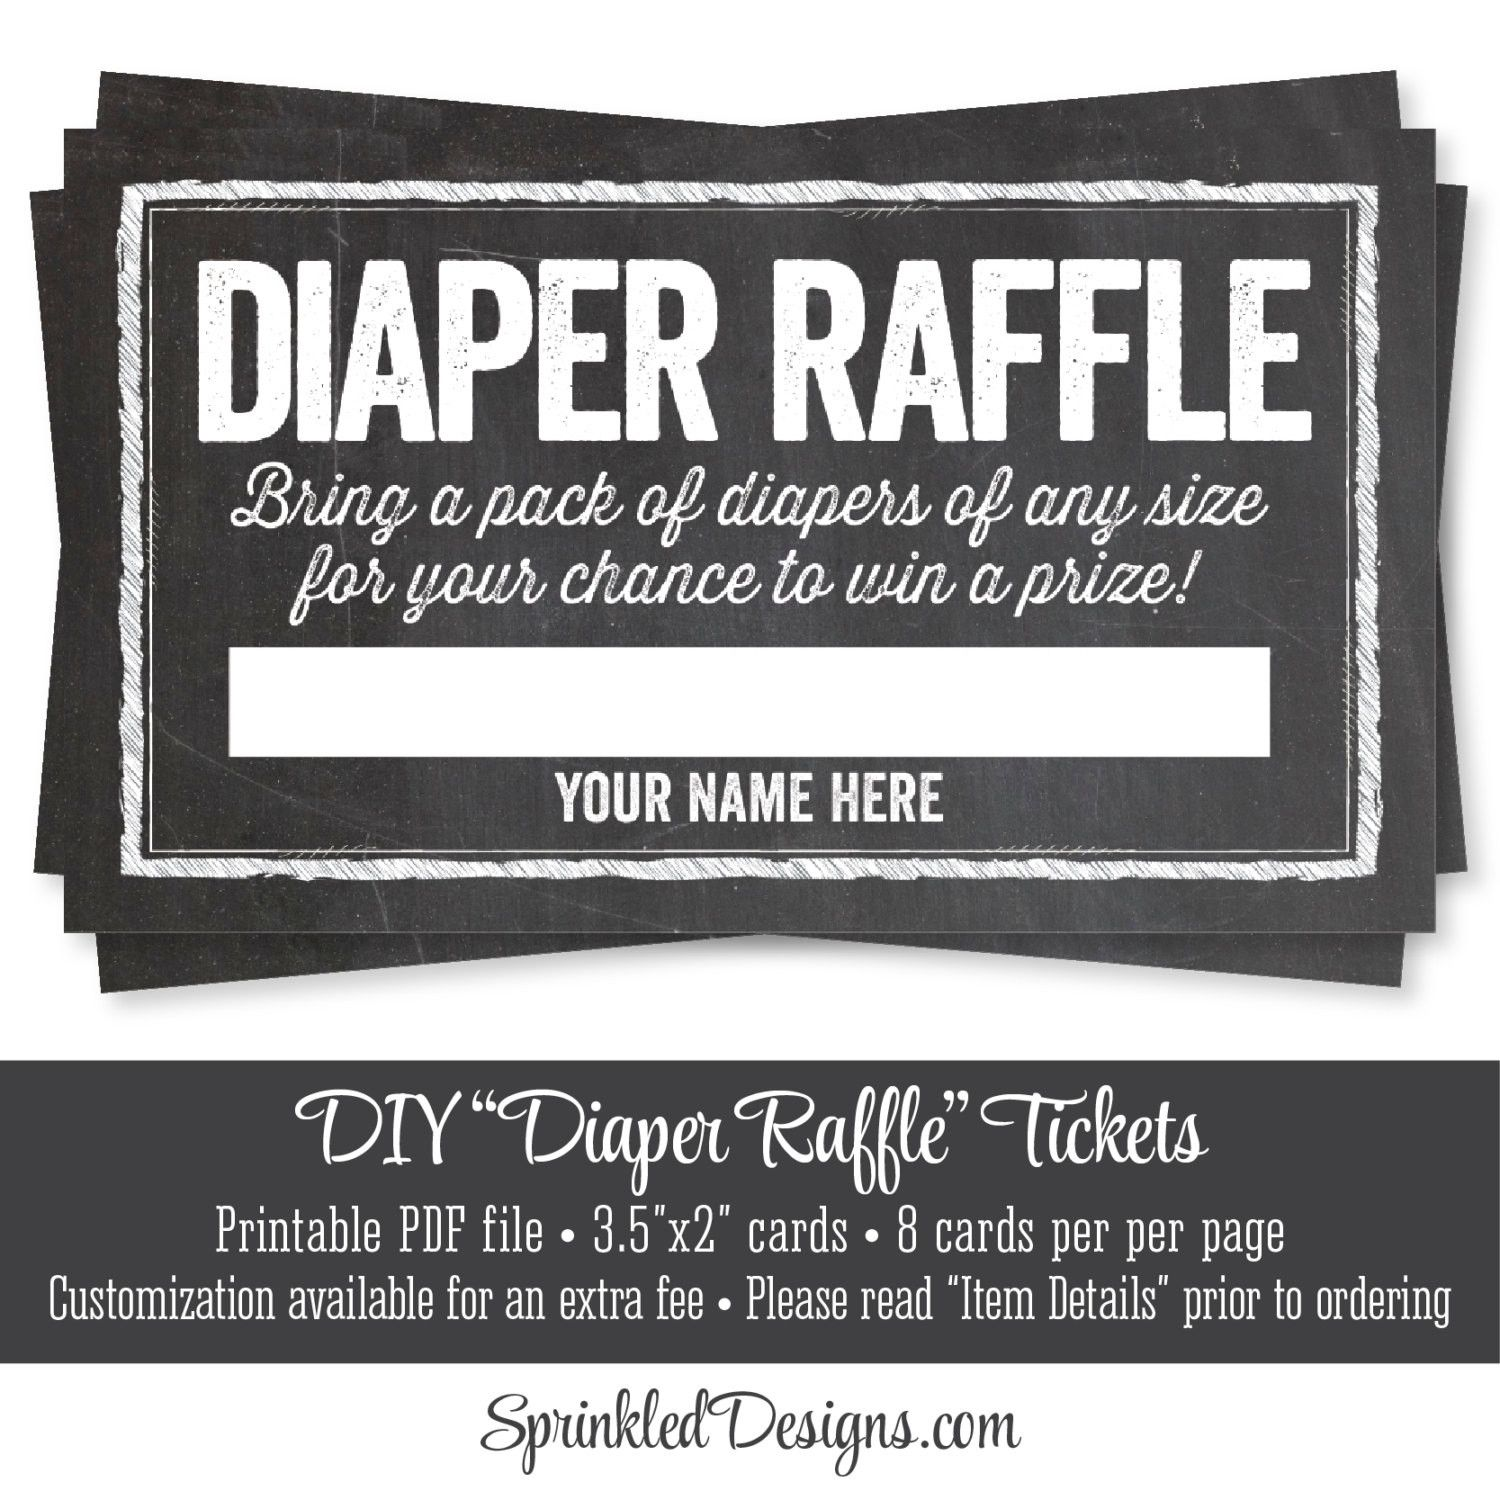 printable diaper raffle tickets chalkboard baby shower game printable diaper raffle tickets chalkboard baby shower game bring sprinkled designs